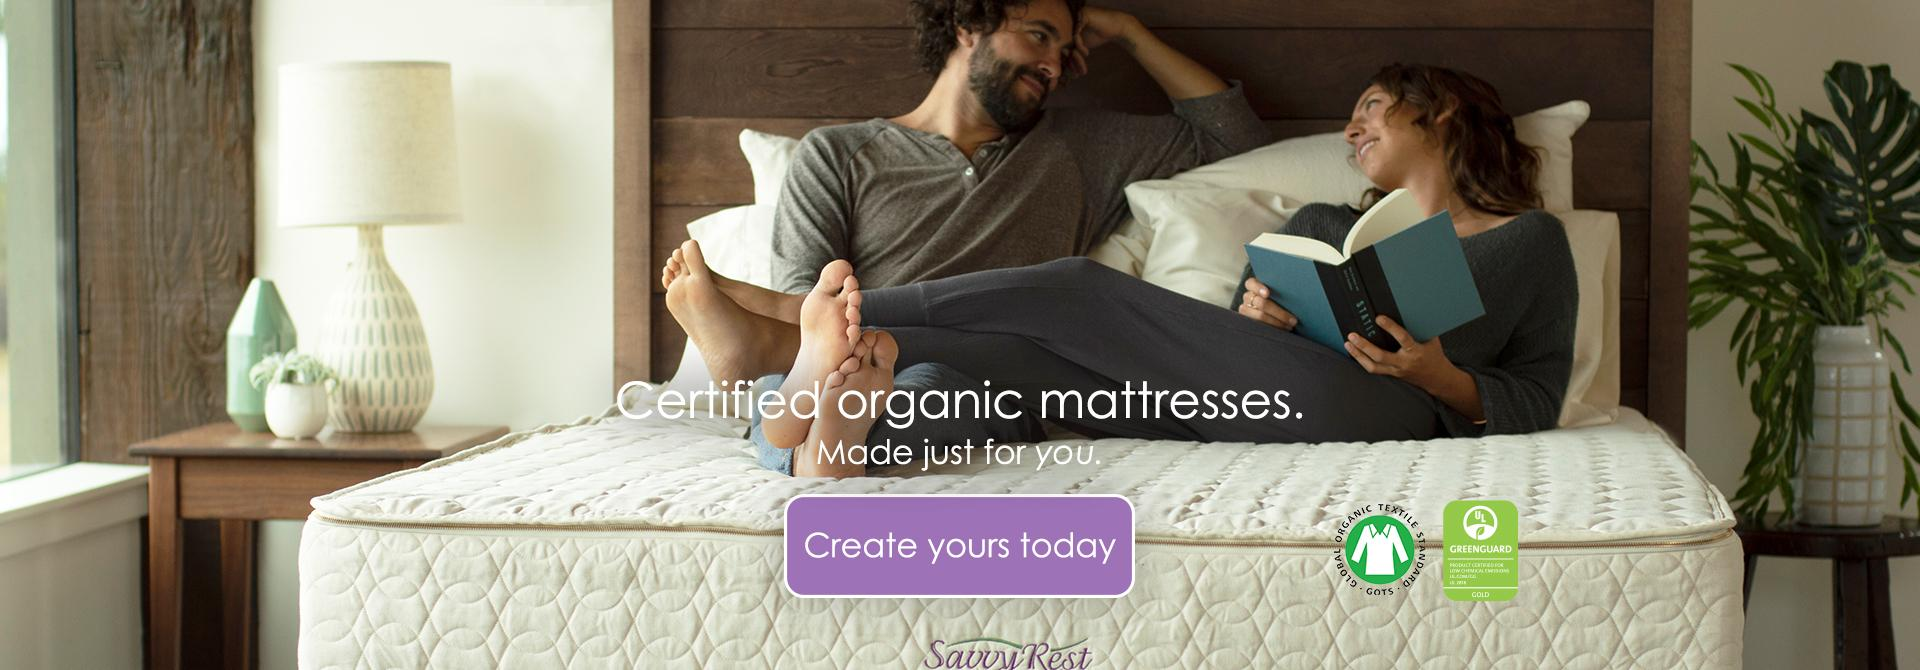 Savvy Rest organic mattresses are GOTS certified